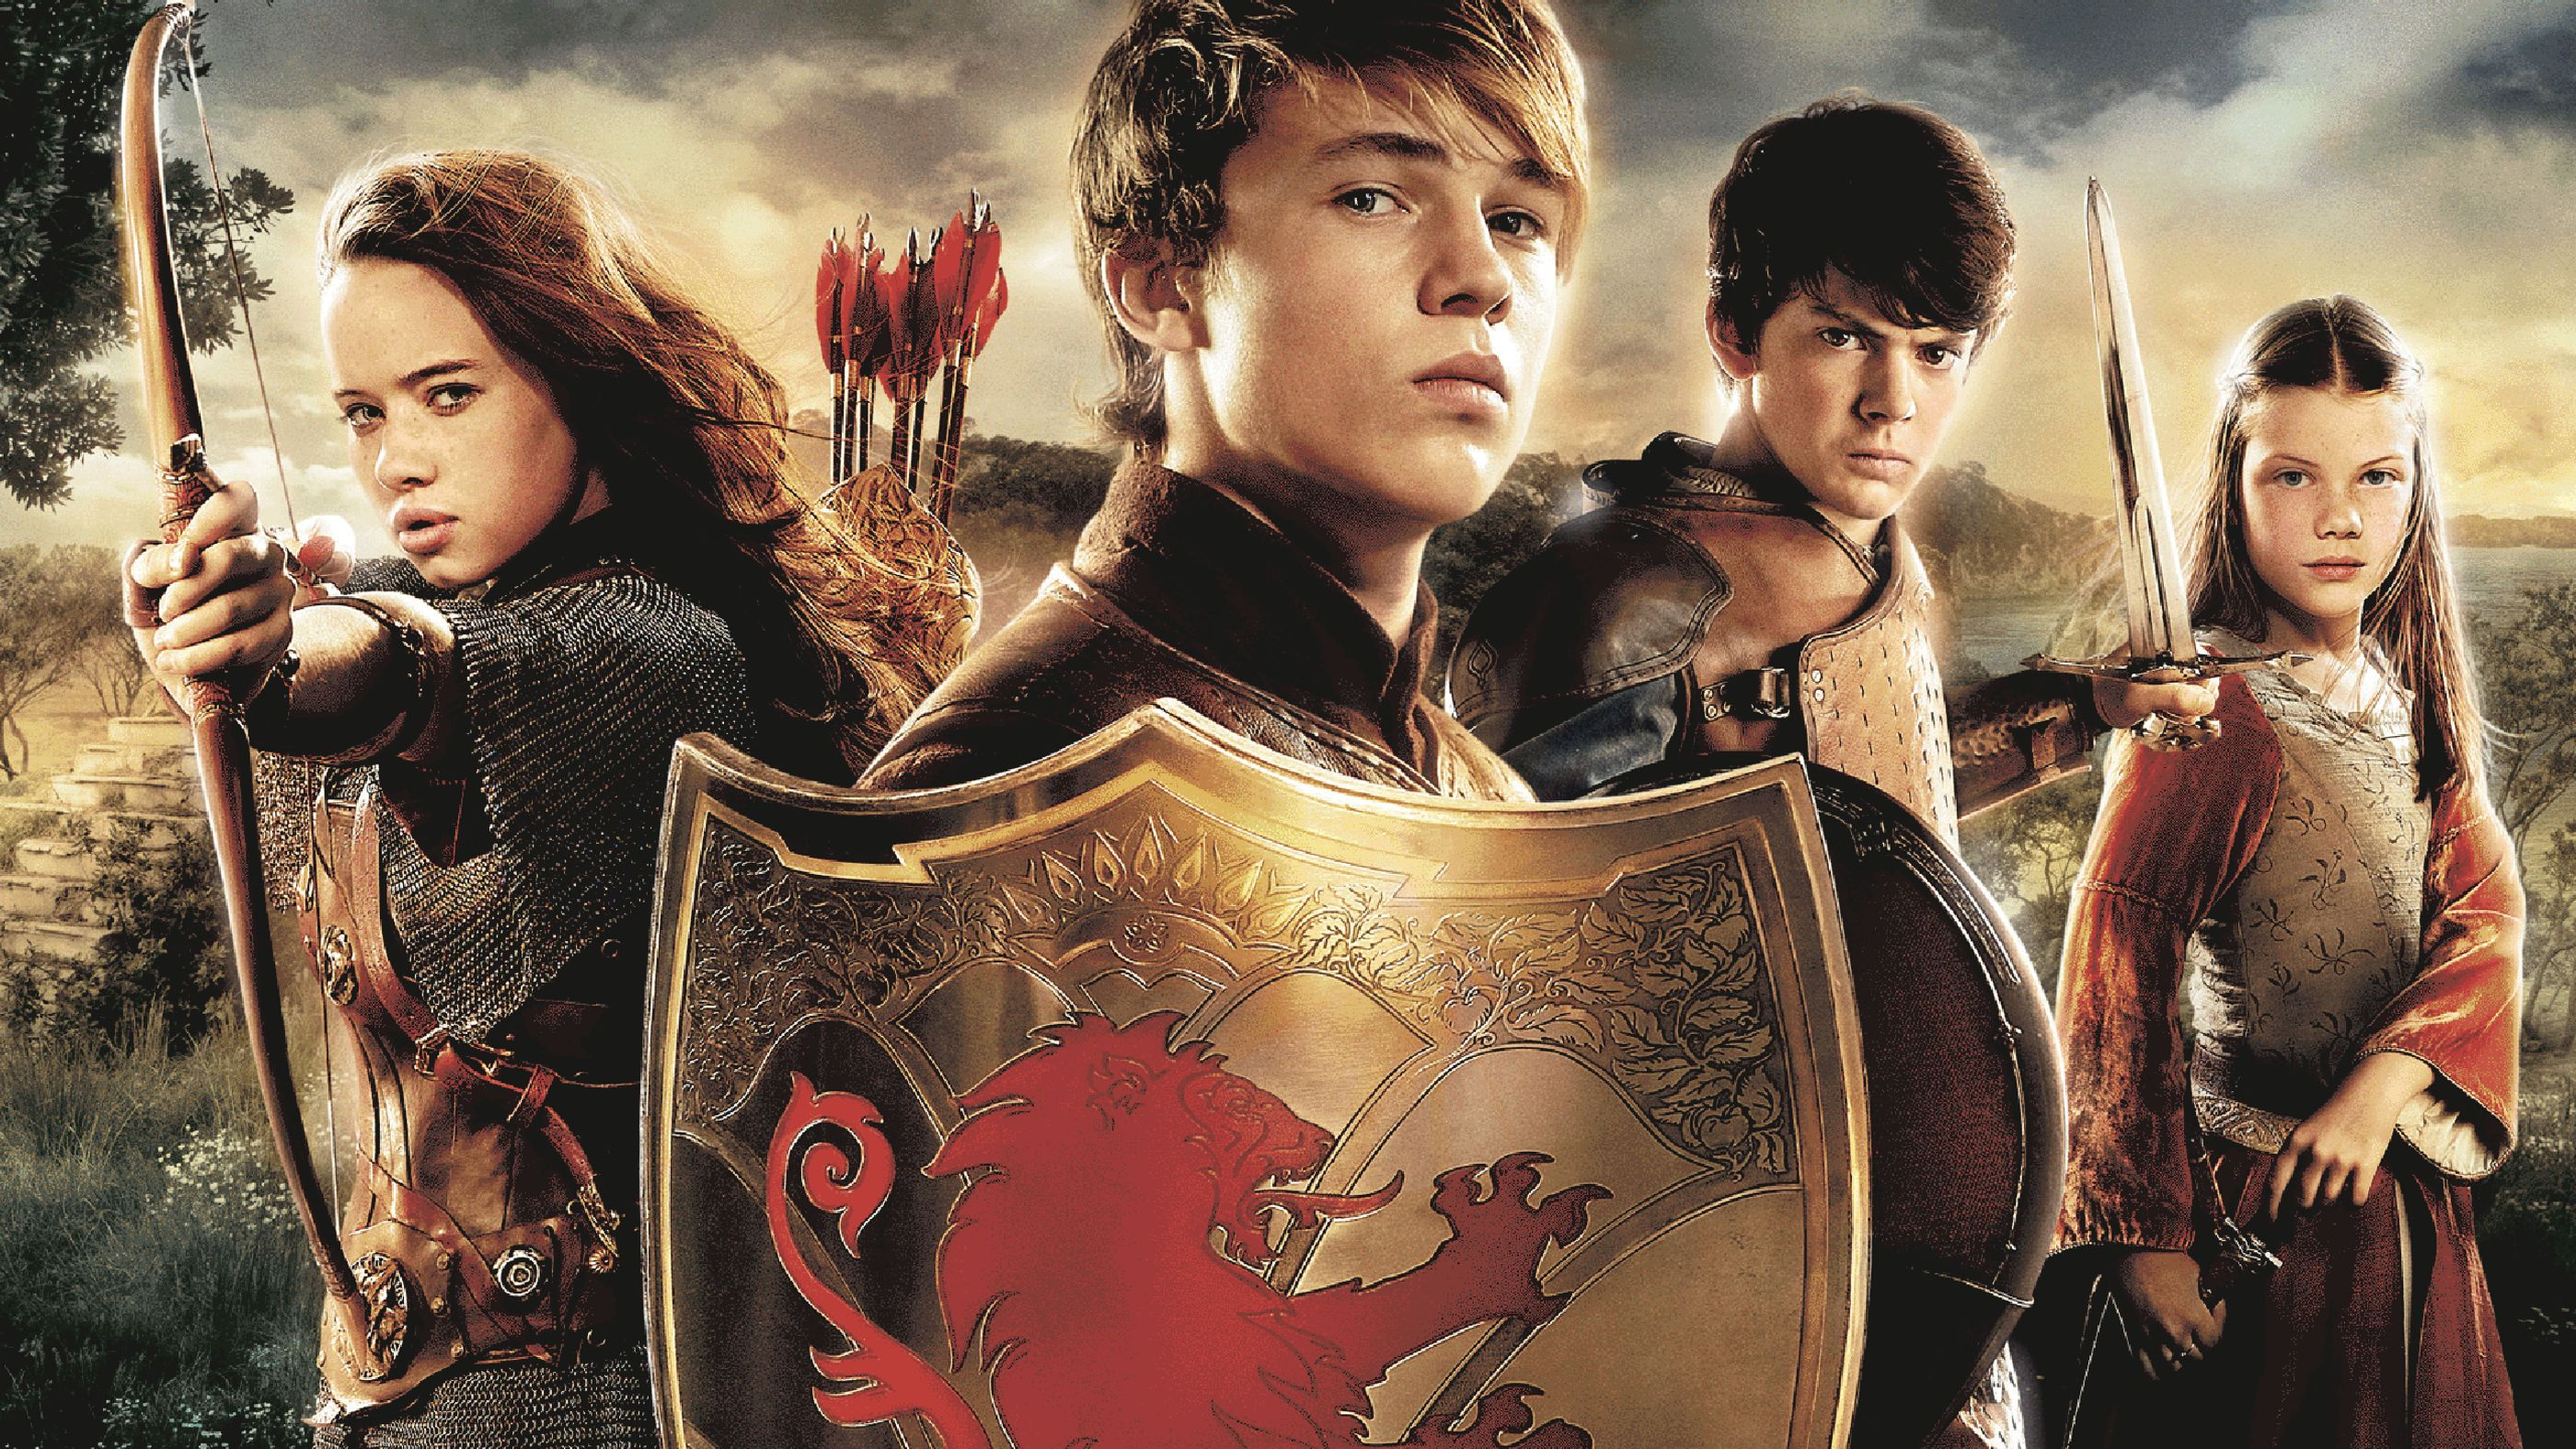 the chronicles of narnia prince caspian movie free download in hindi